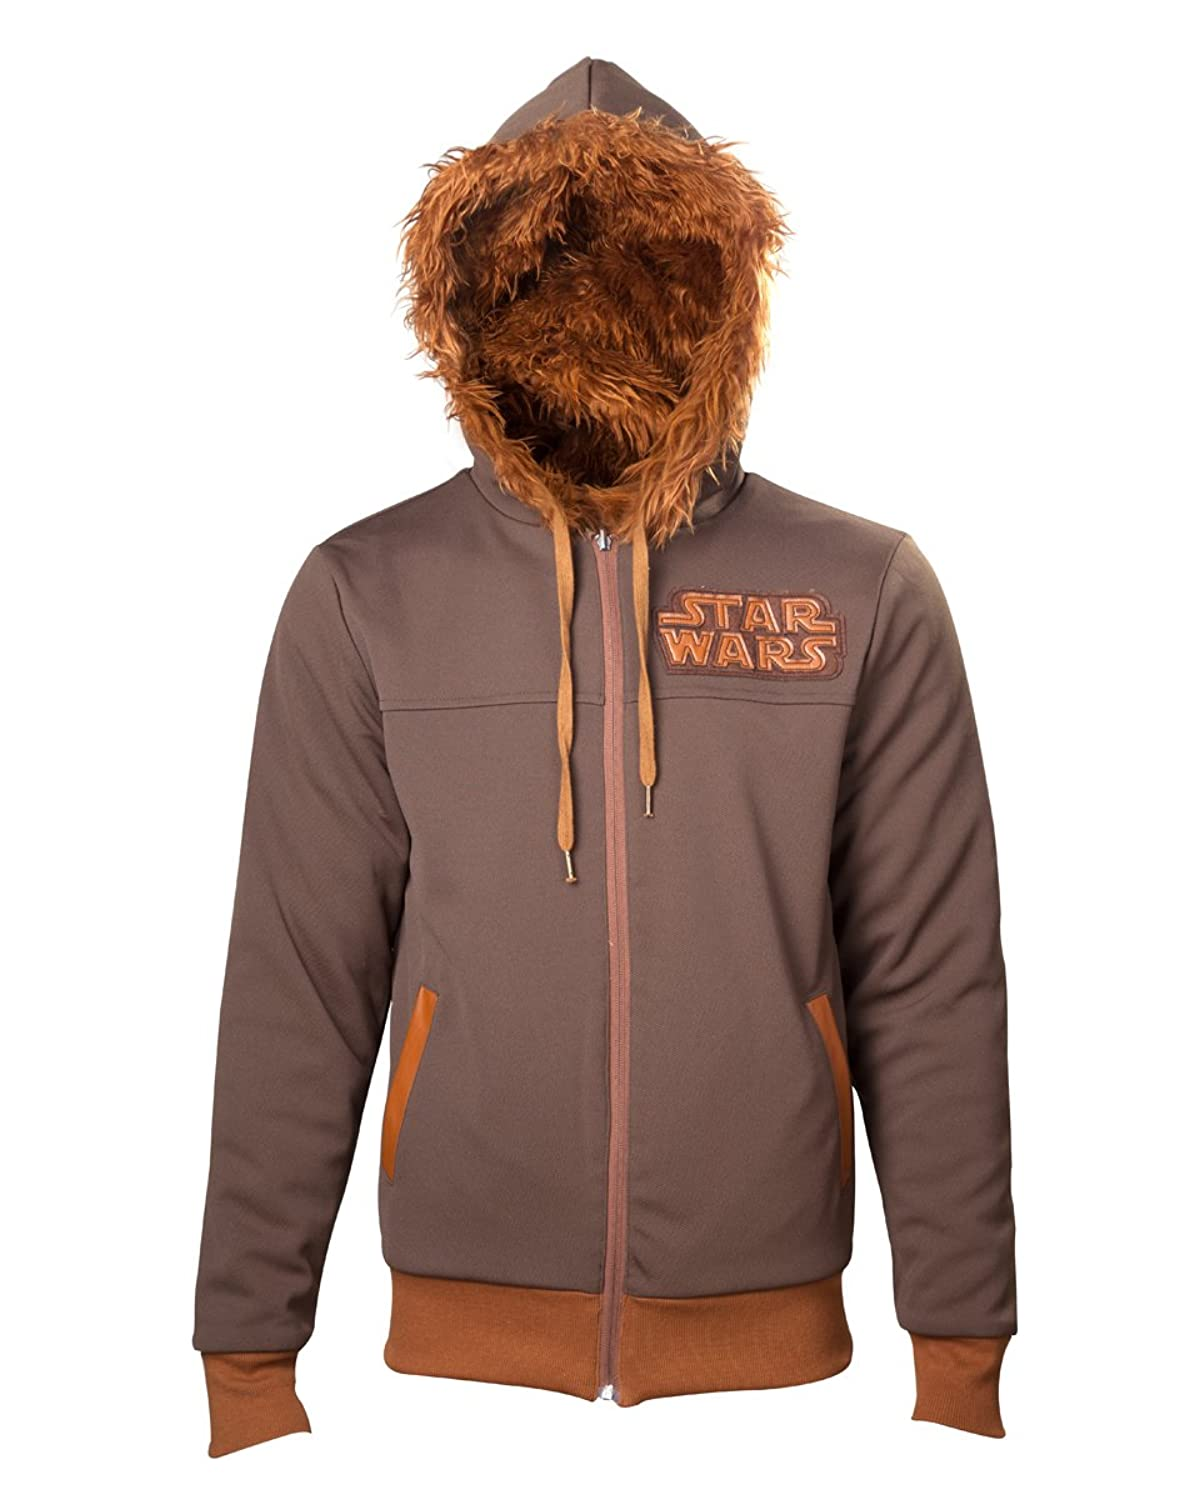 Amazoncom Star Wars Chewbacca Hoodie Mask Zip Clothing - Hoodie will turn you into chewbacca from star wars